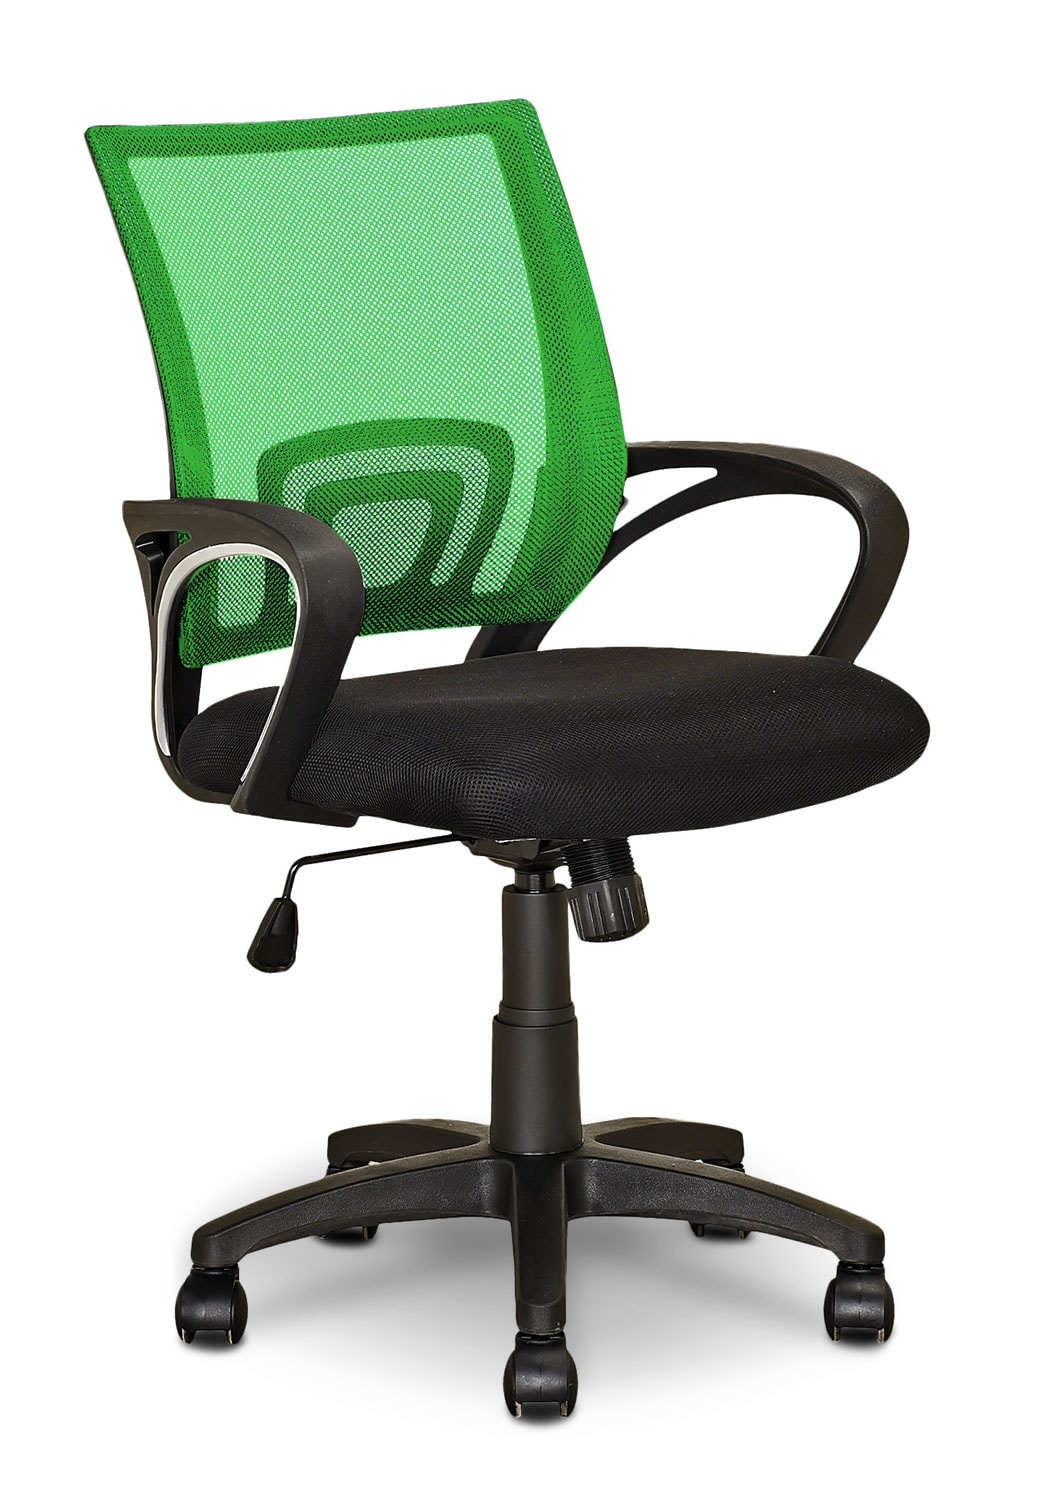 Loft Mesh Office Chair – Medium Green